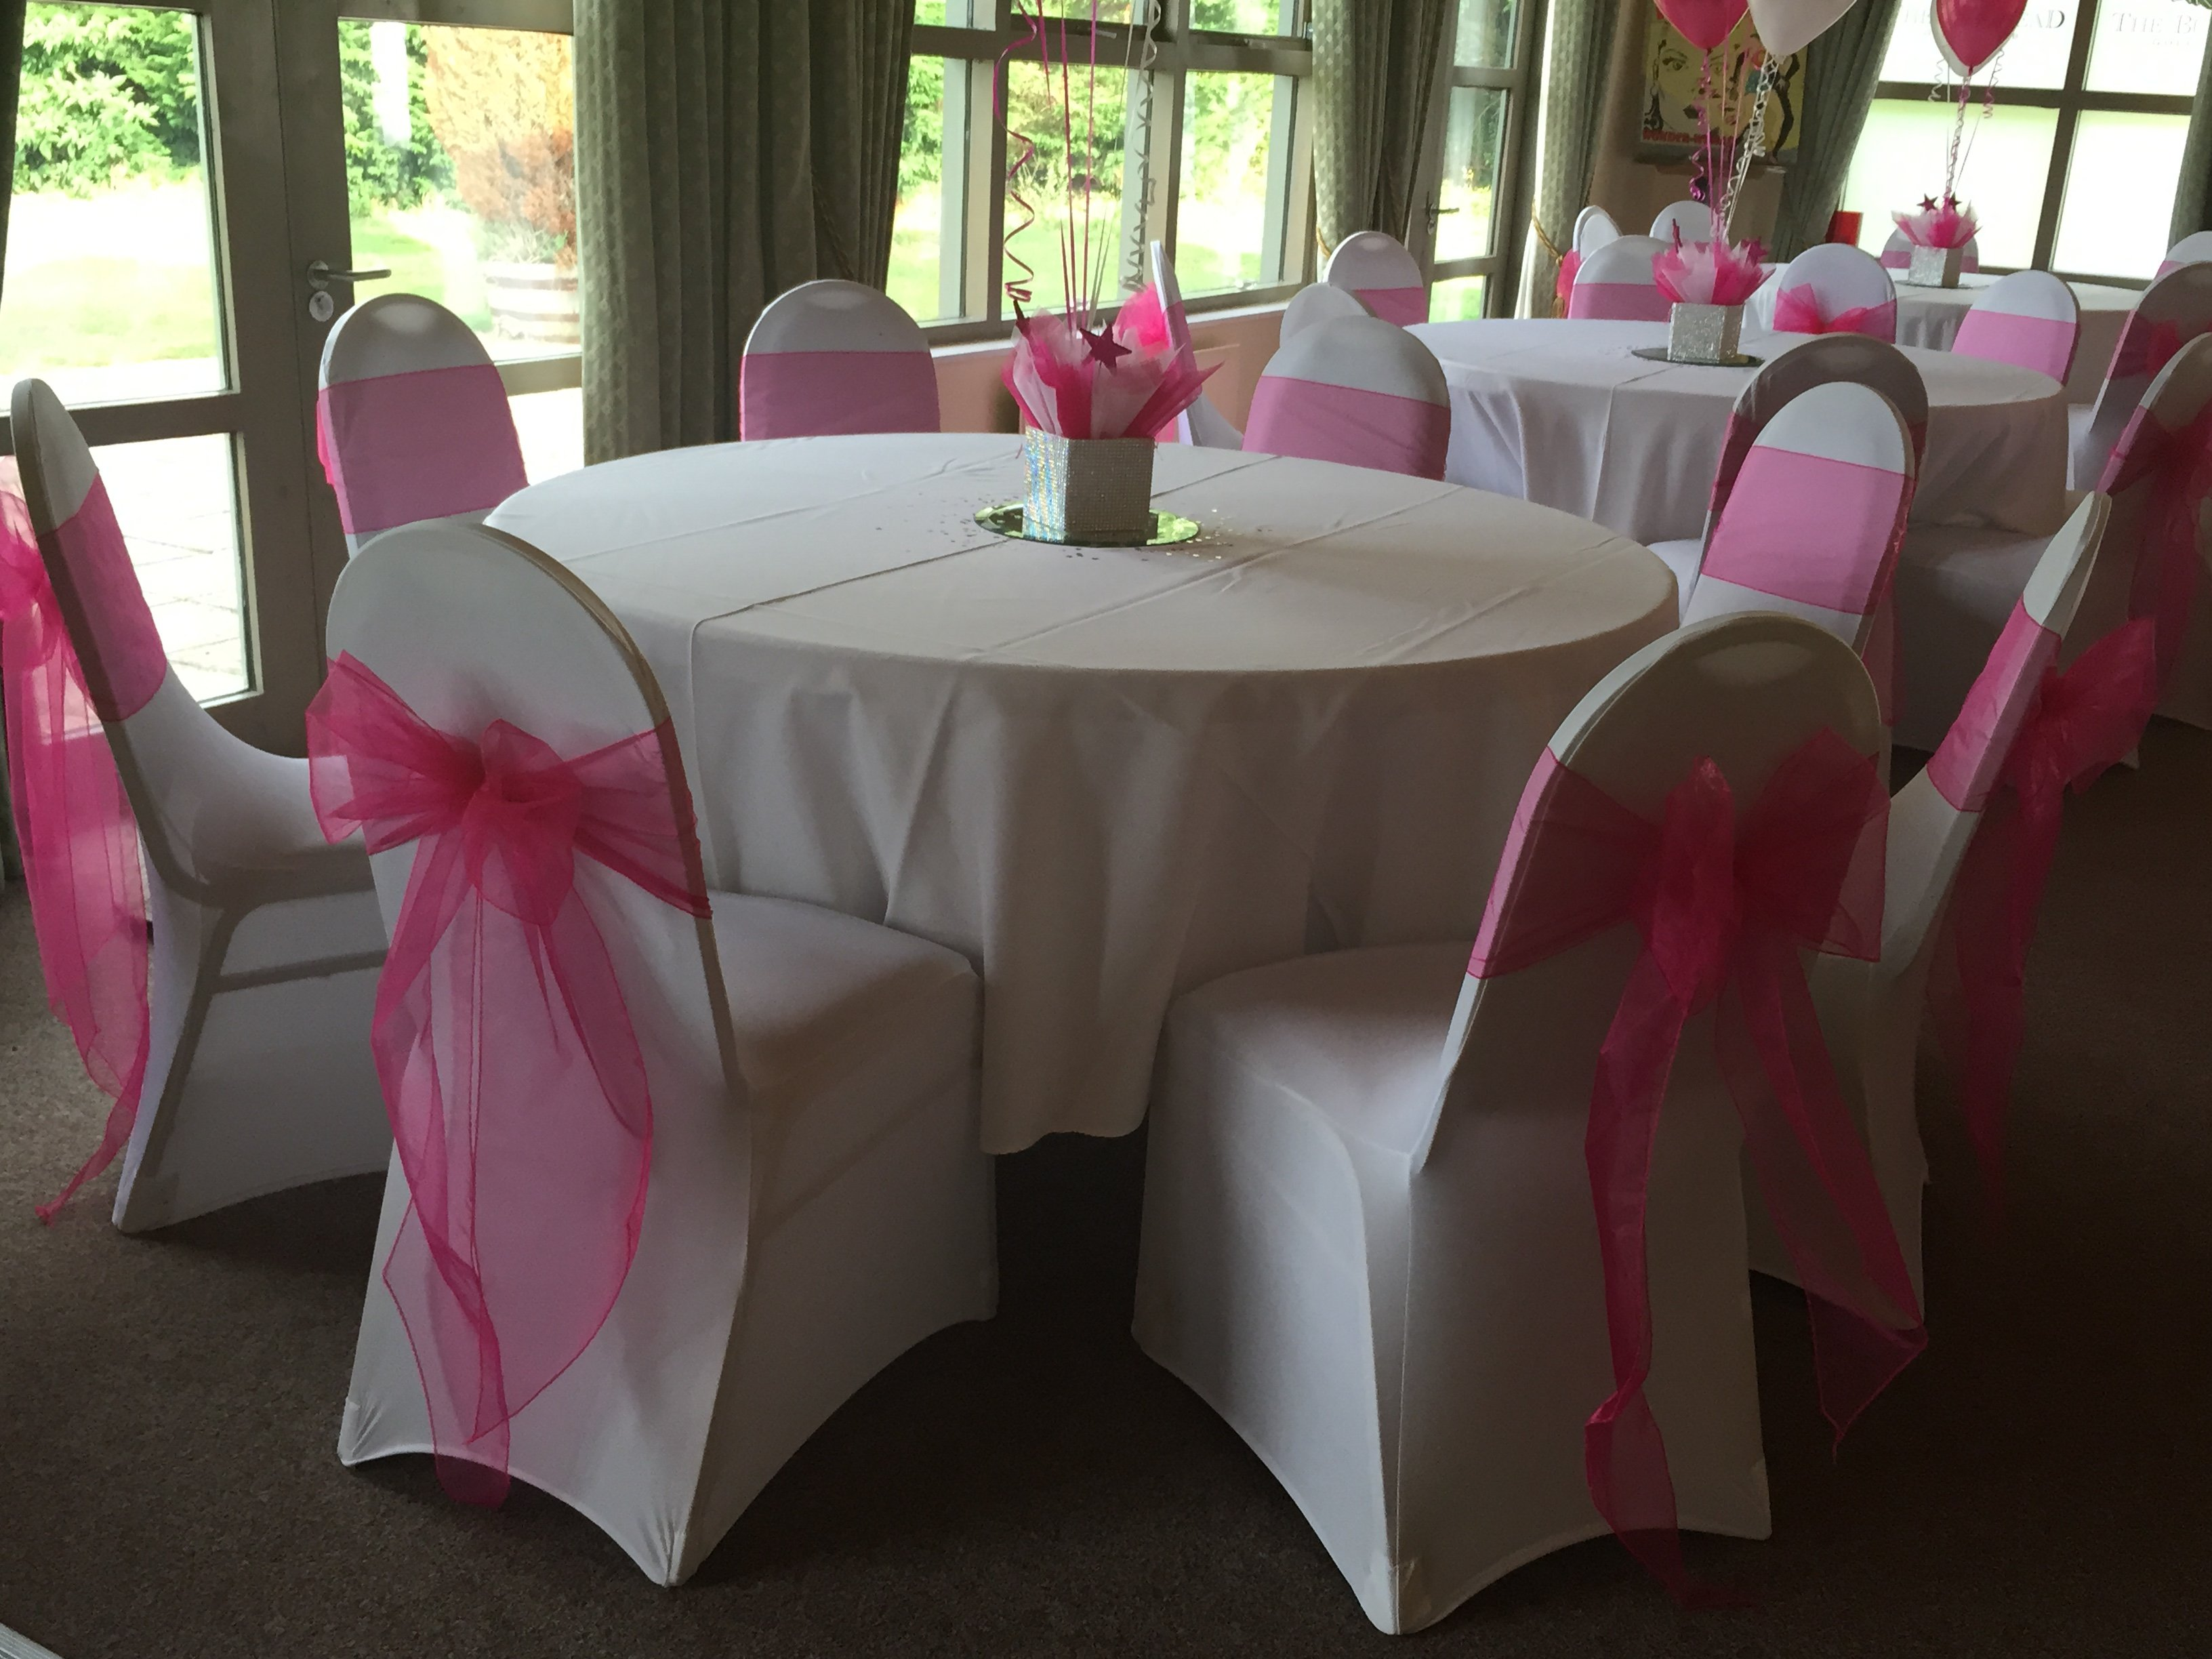 Pink organza sash with white lycra chair covers at Burstead Golf Club